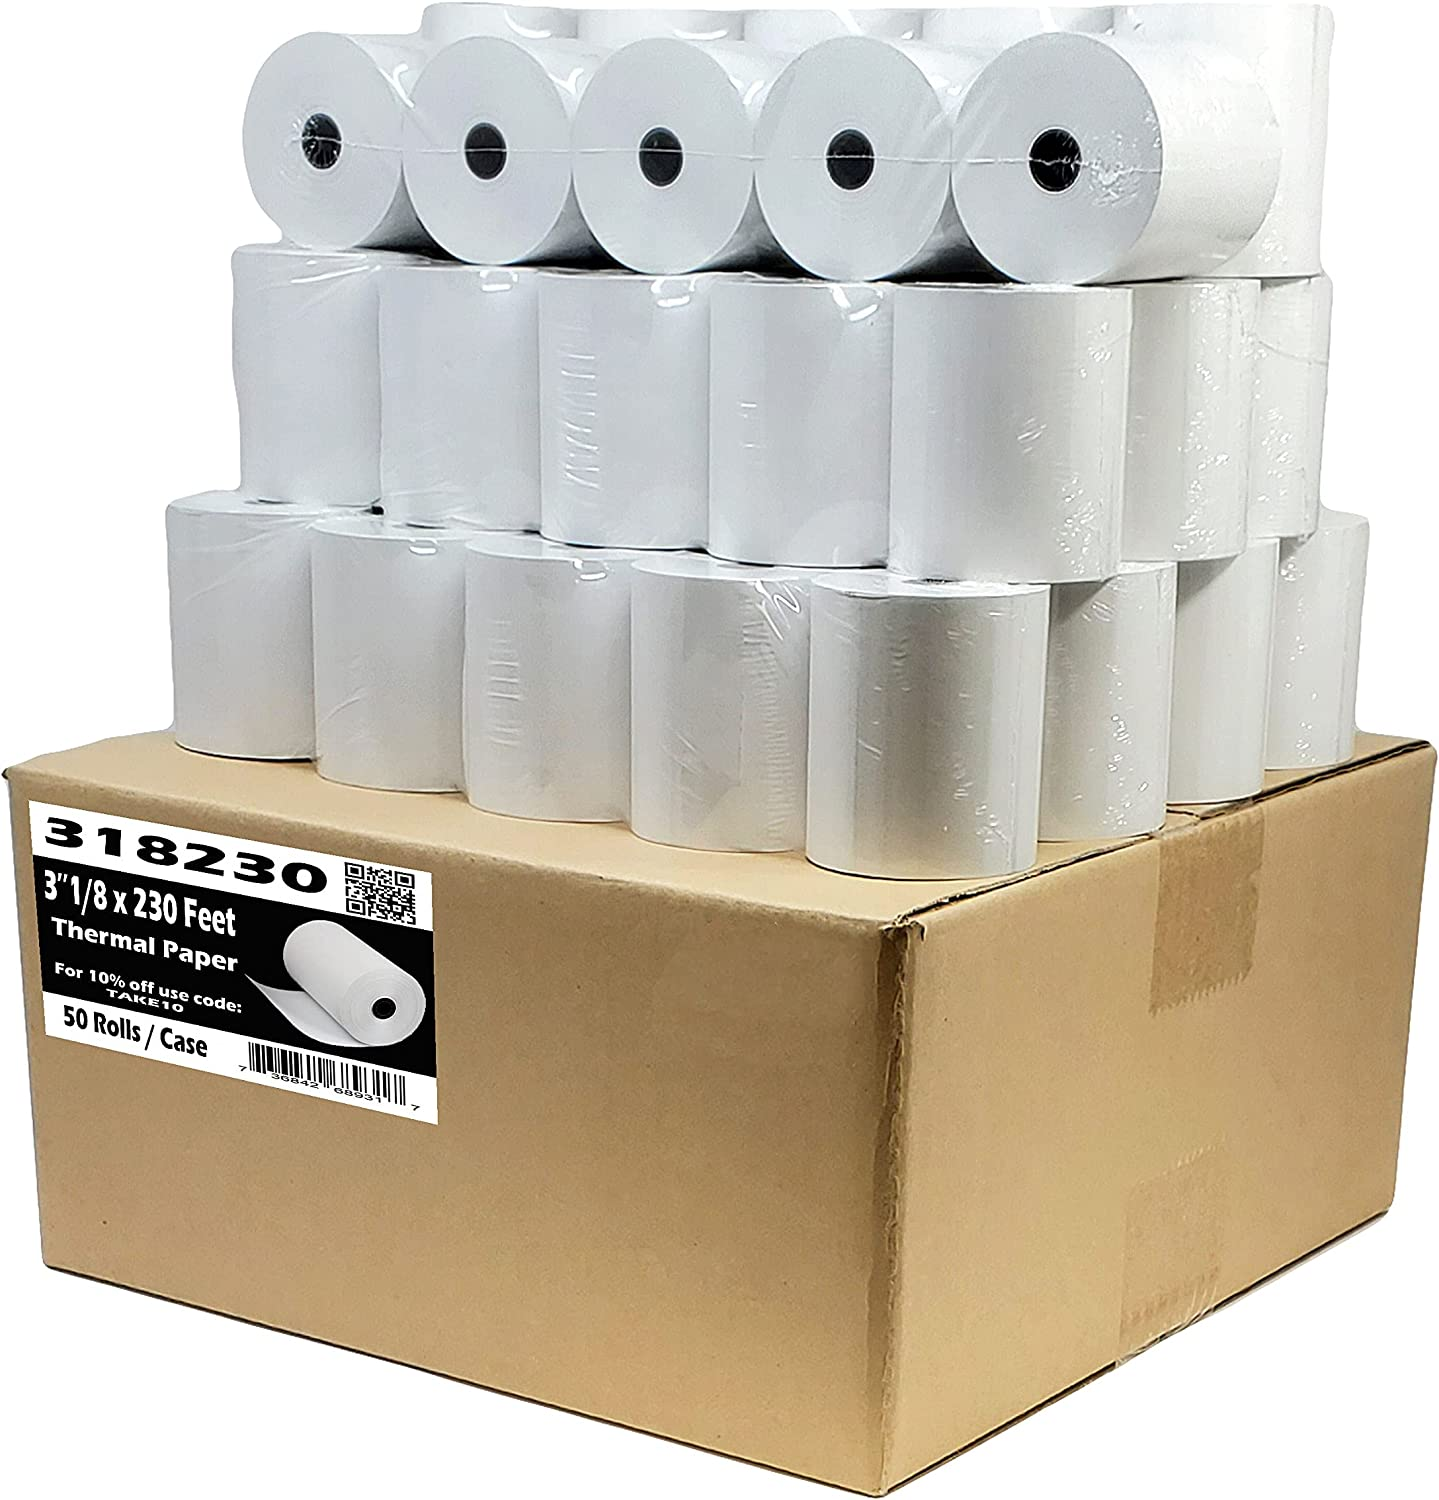 55GSM - Shrink Wrap 3 Free shipping on posting reviews 1 8 Feet Thermal Max 76% OFF Clover Paper Station x230